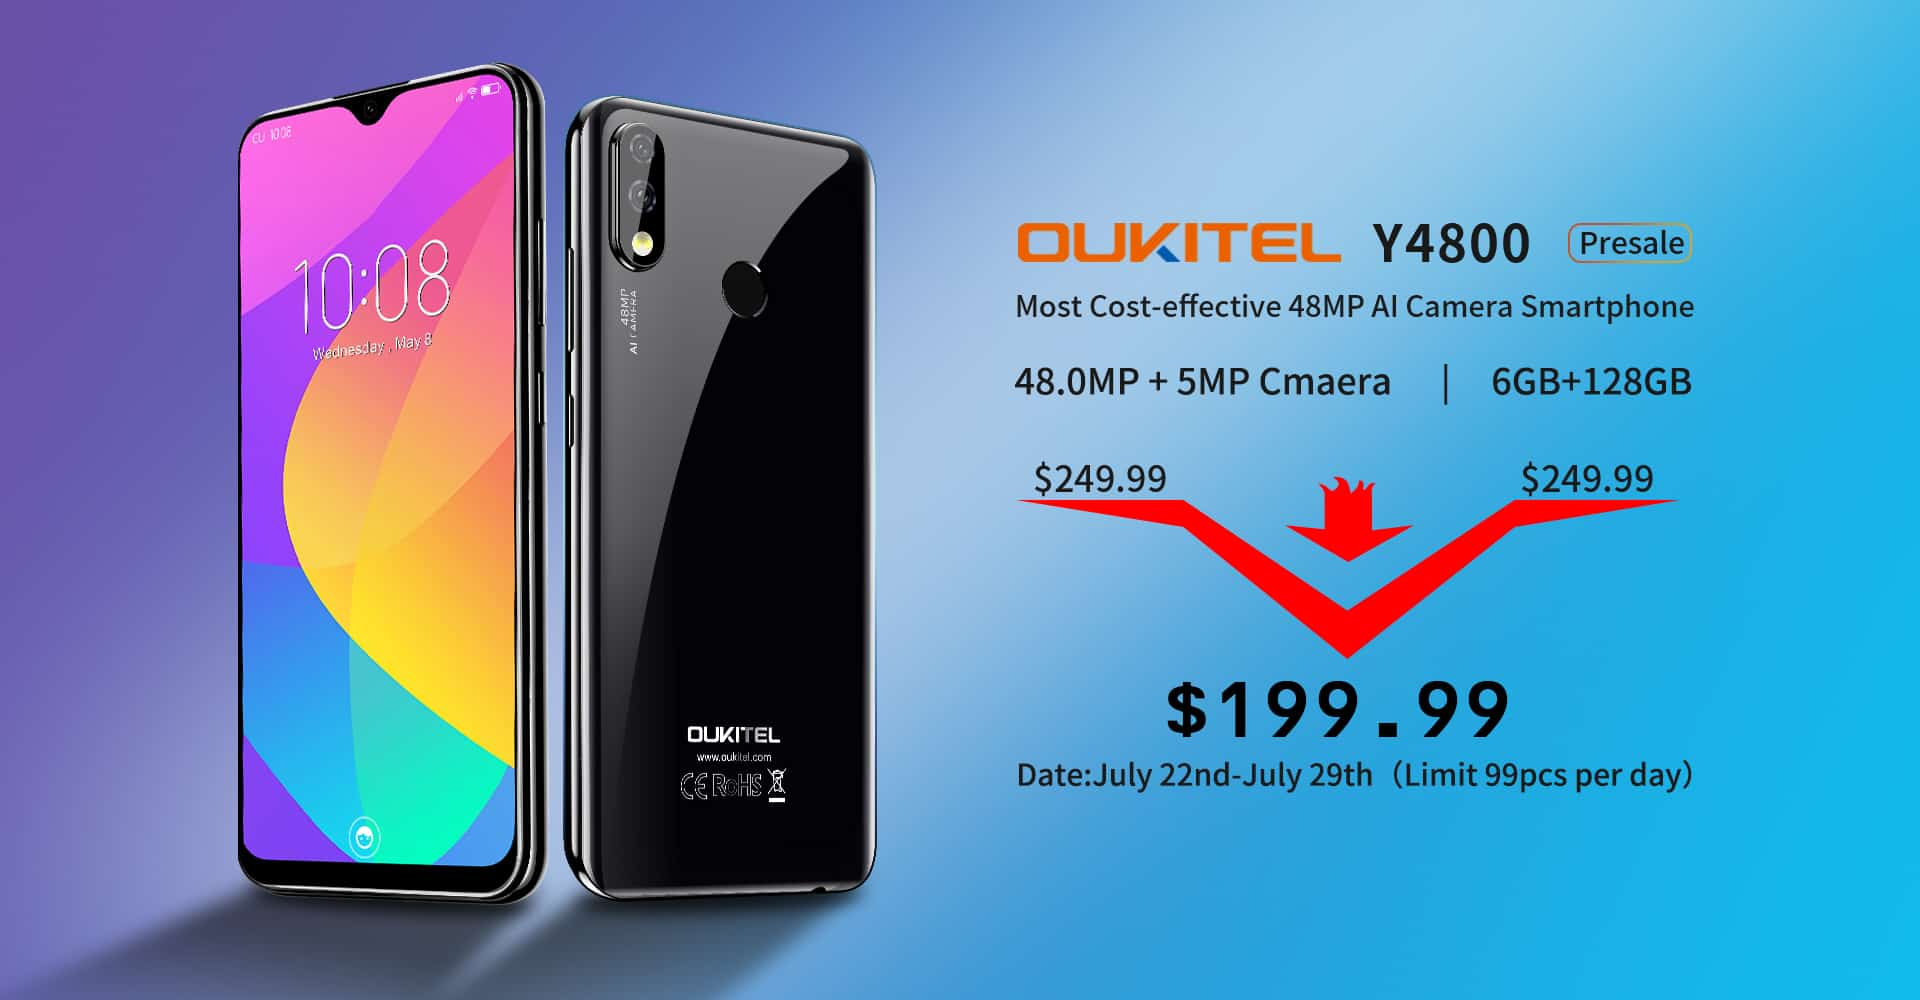 OUKITEL Y4800 sale at 199.99